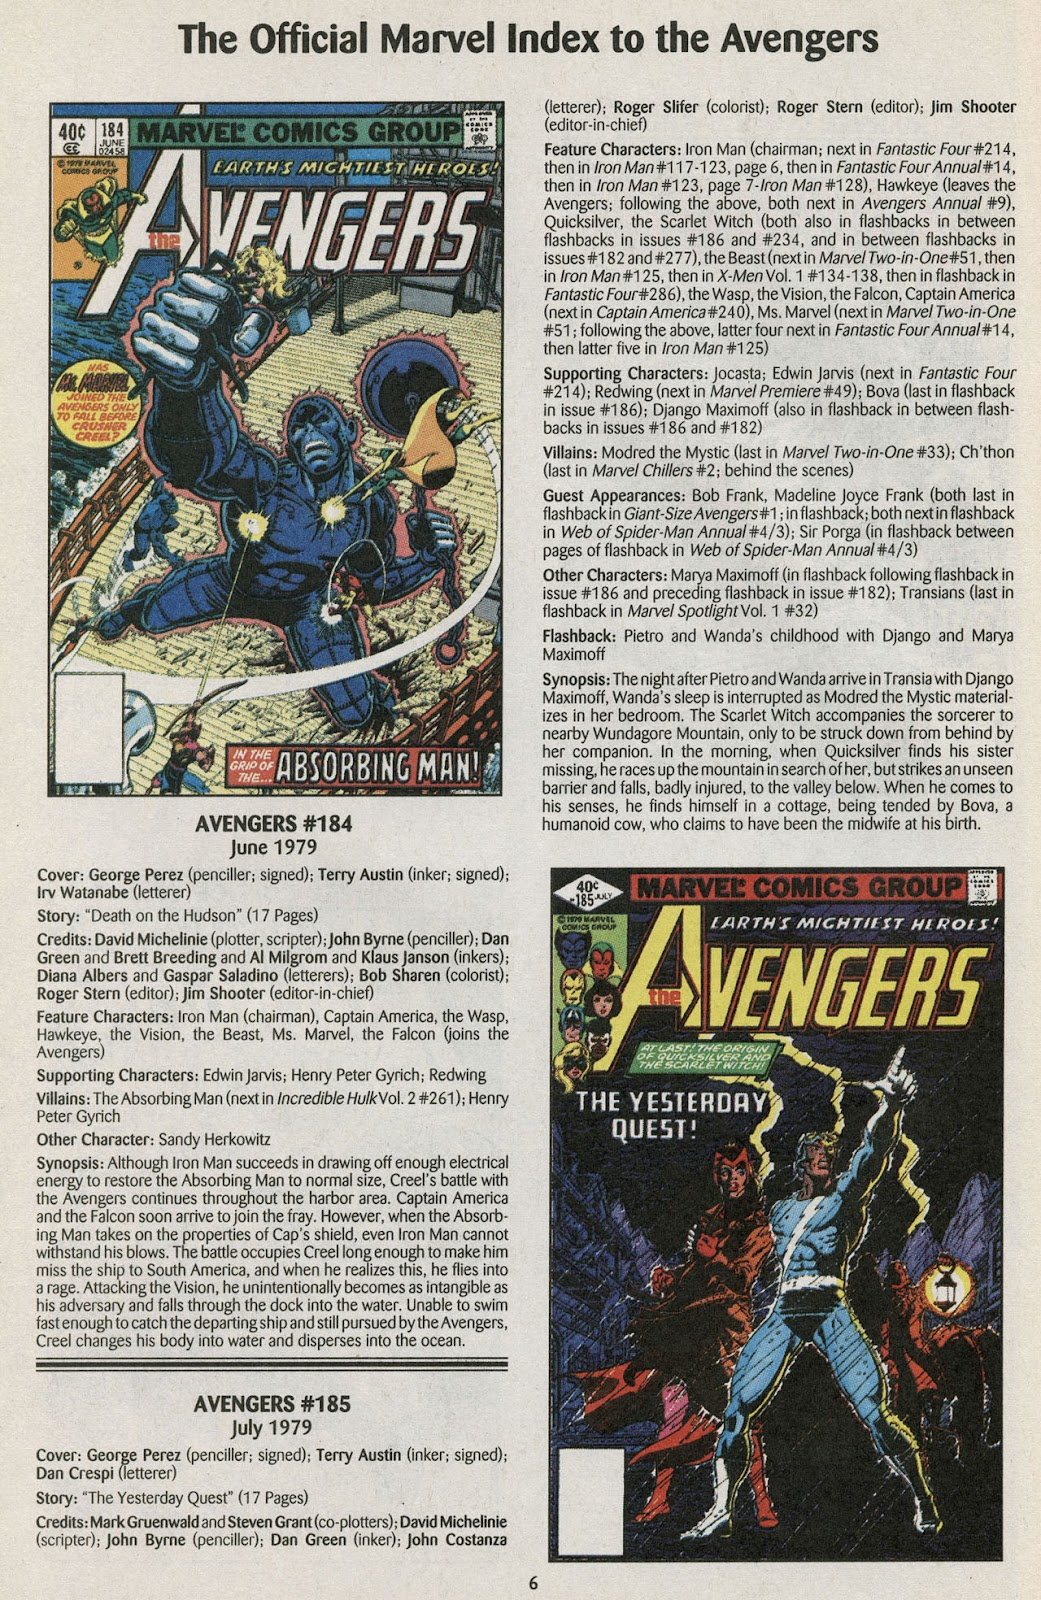 Comic The Official Marvel Index to the Avengers issue 4